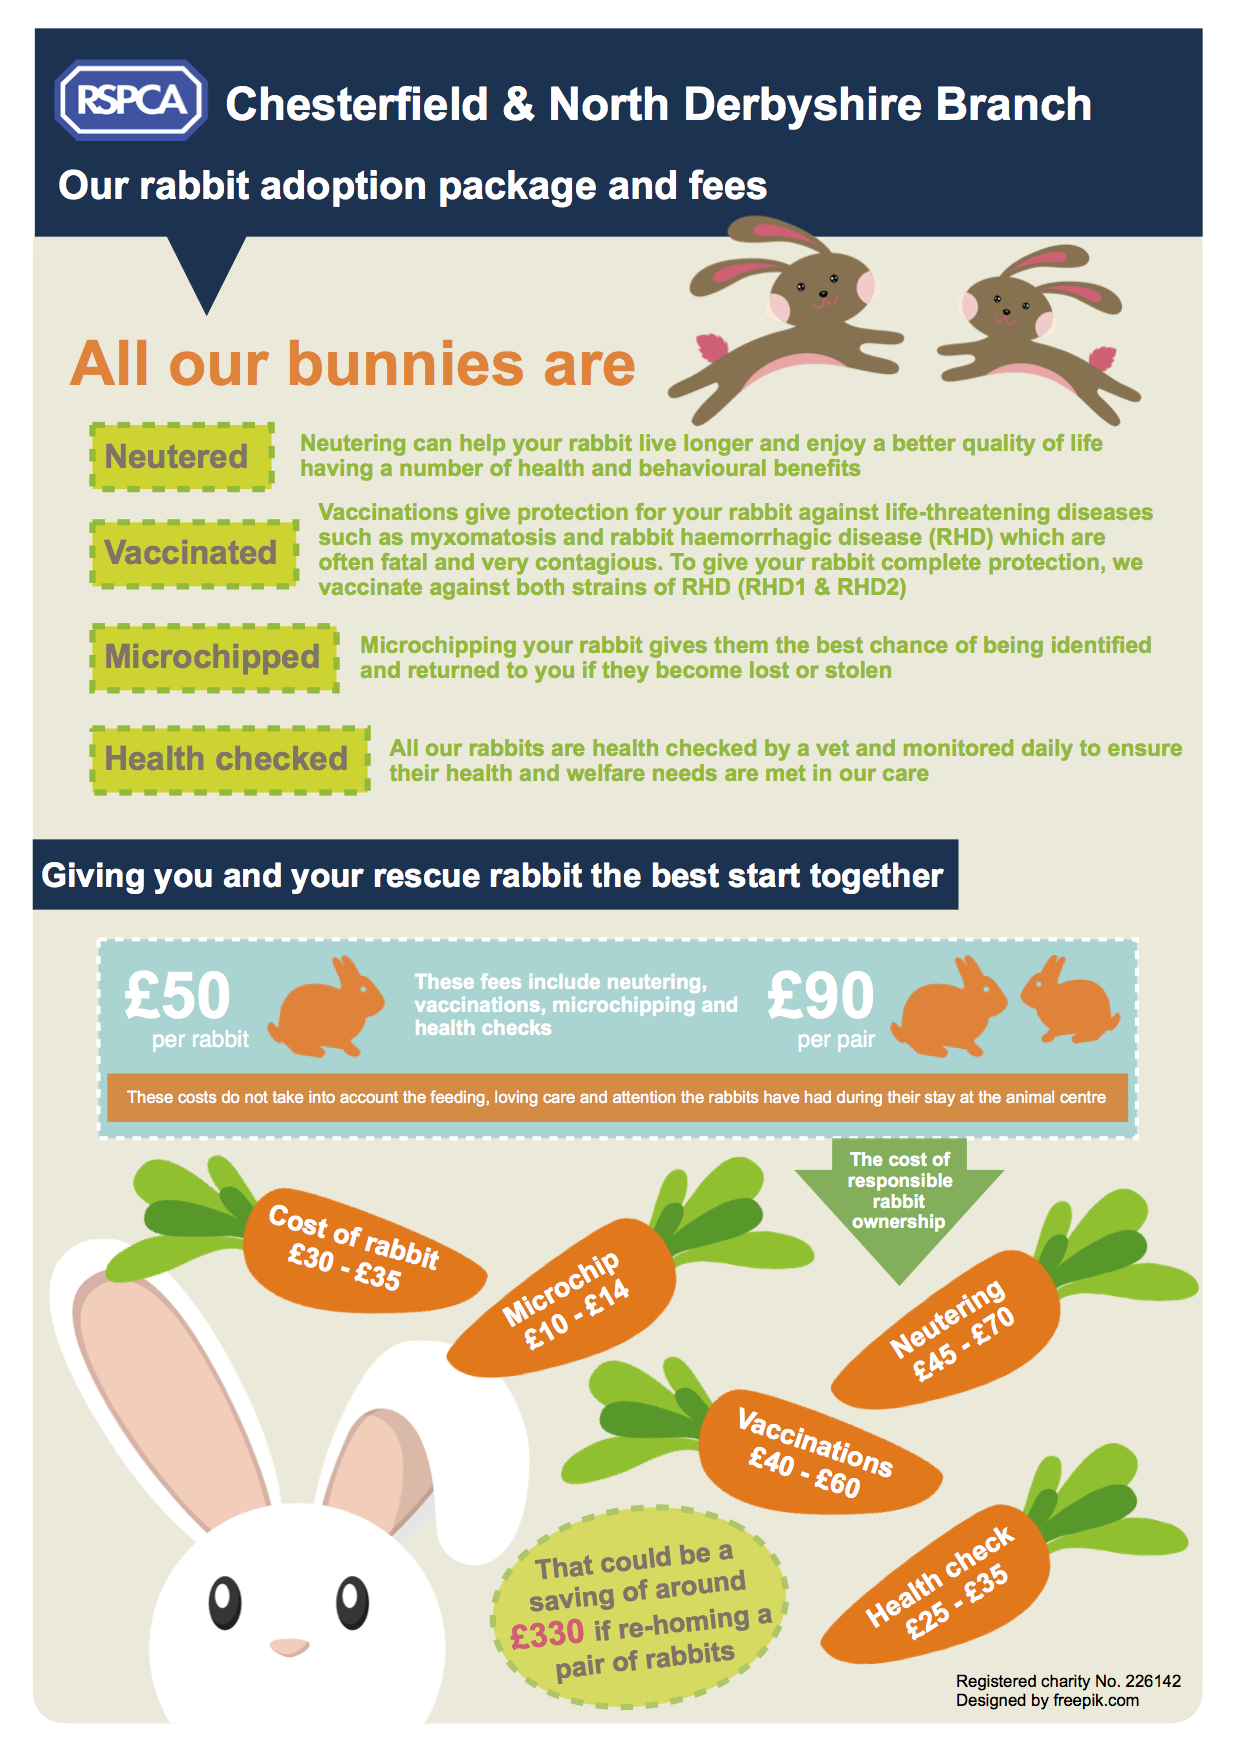 Our rabbit adoption package and fees